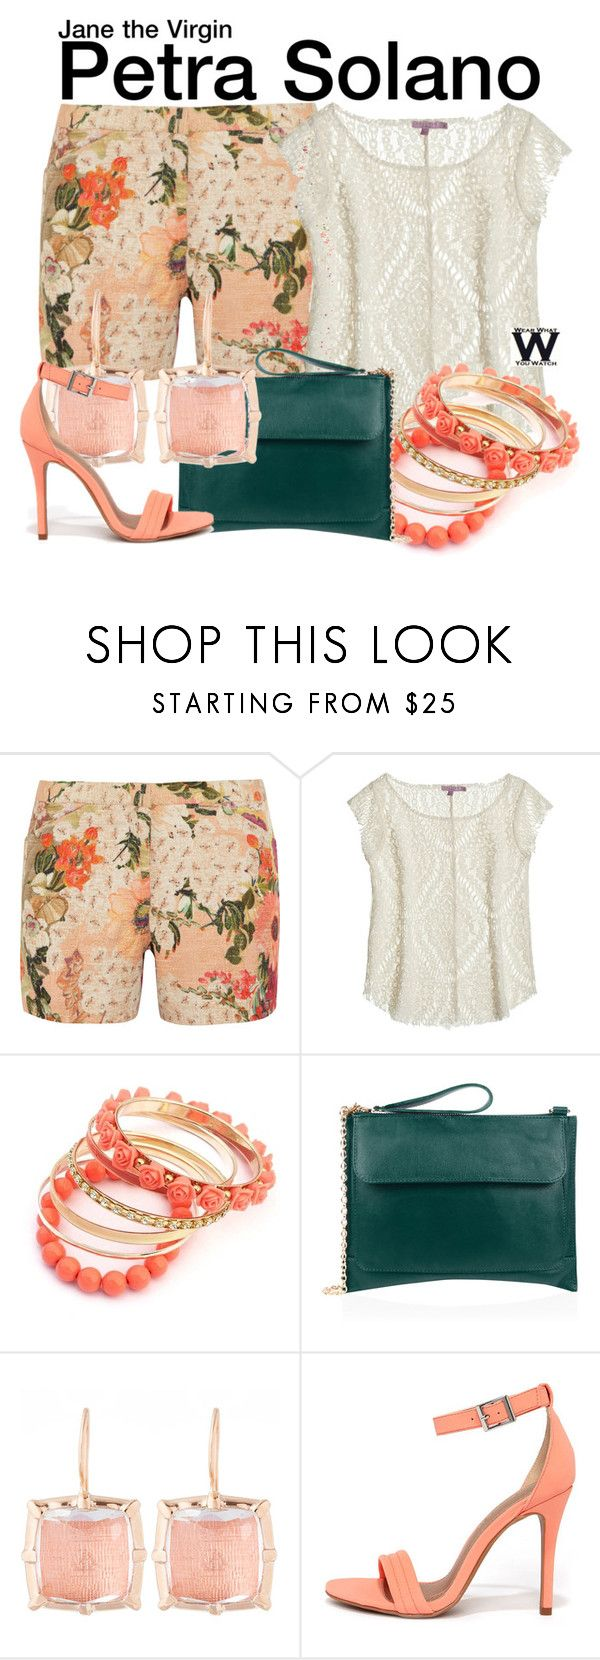 """""""Jane the Virgin"""" by wearwhatyouwatch ❤ liked on Polyvore featuring Tory Burch, Calypso St. Barth, Oasis, Larkspur & Hawk, Shoe Republic LA, wearwhatyouwatch and film"""